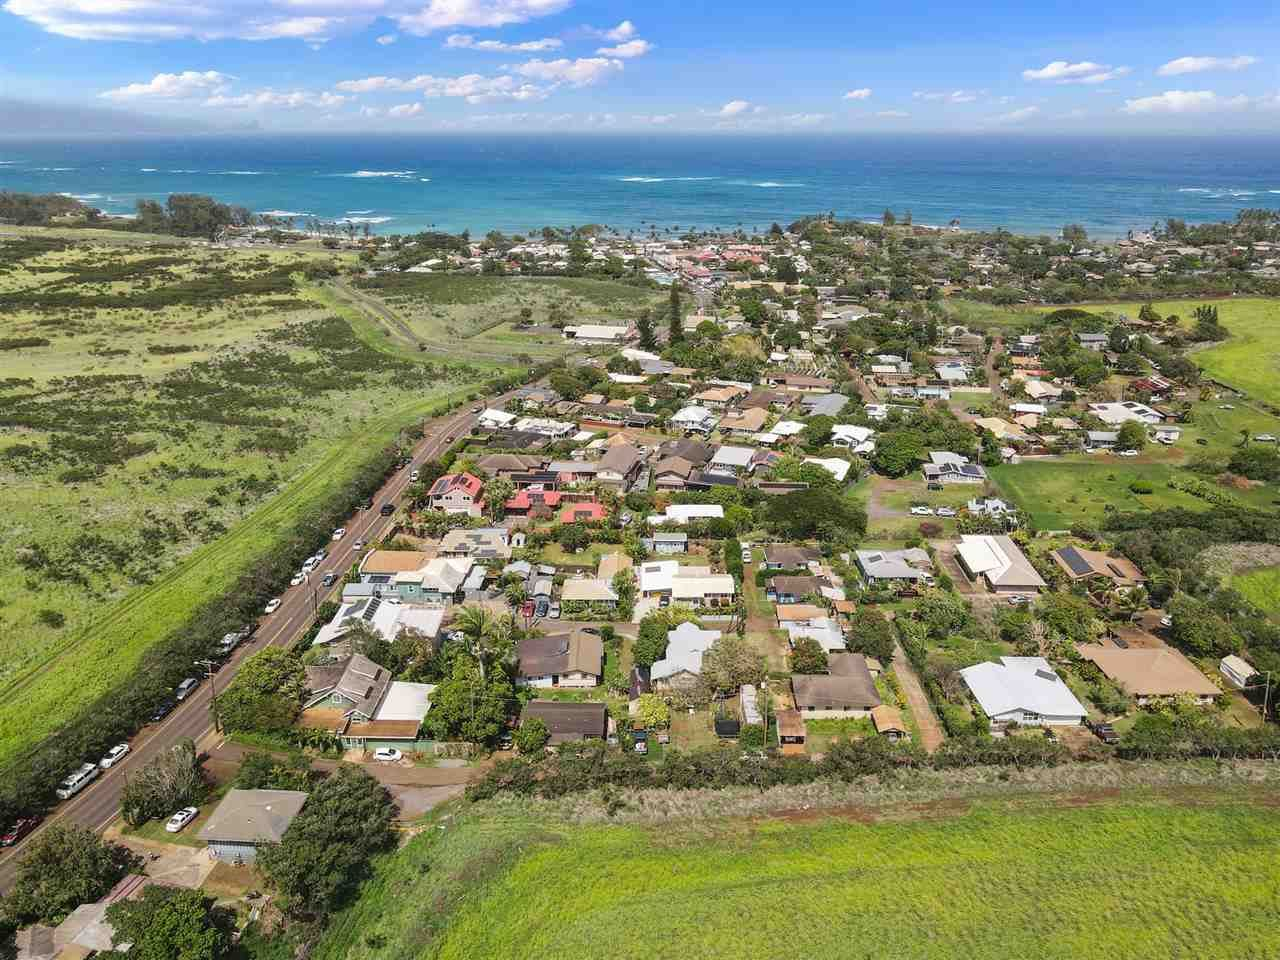 Photo of 33 Poni Pl, Paia, HI 96779-9602 (MLS # 390921)